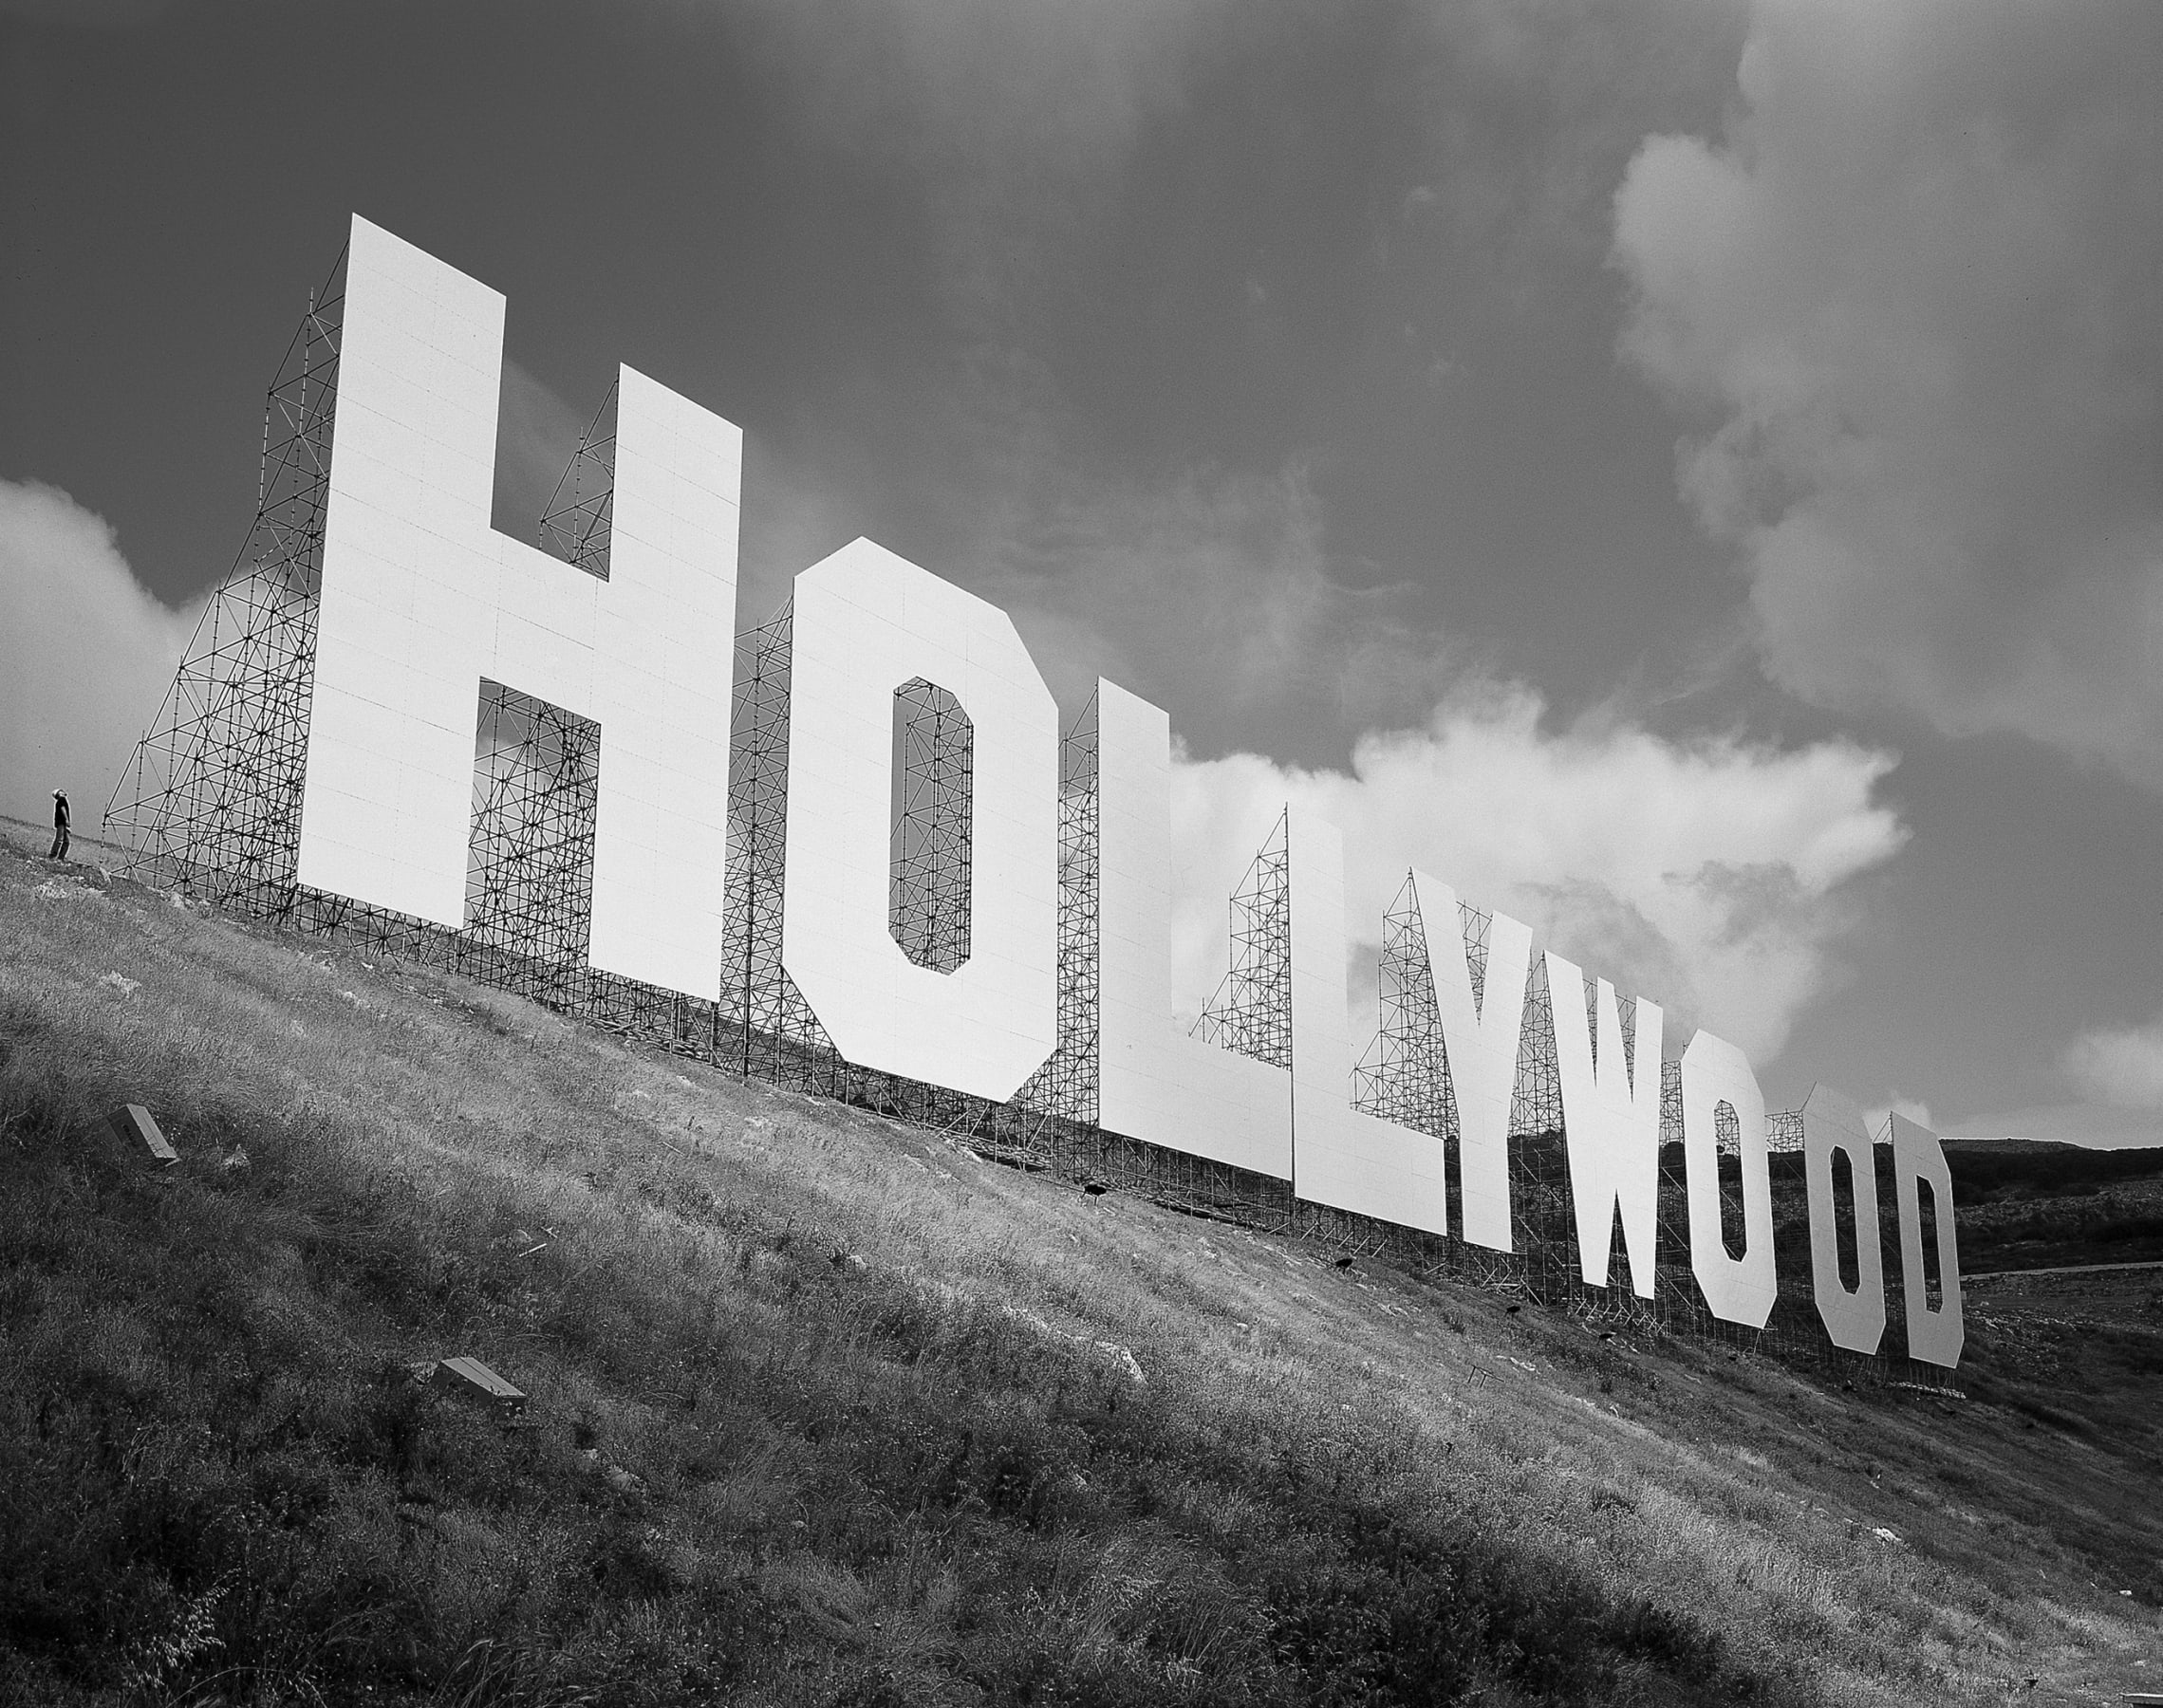 A photograph of the Hollywood sign as recreated by Maurizio Cattelan.